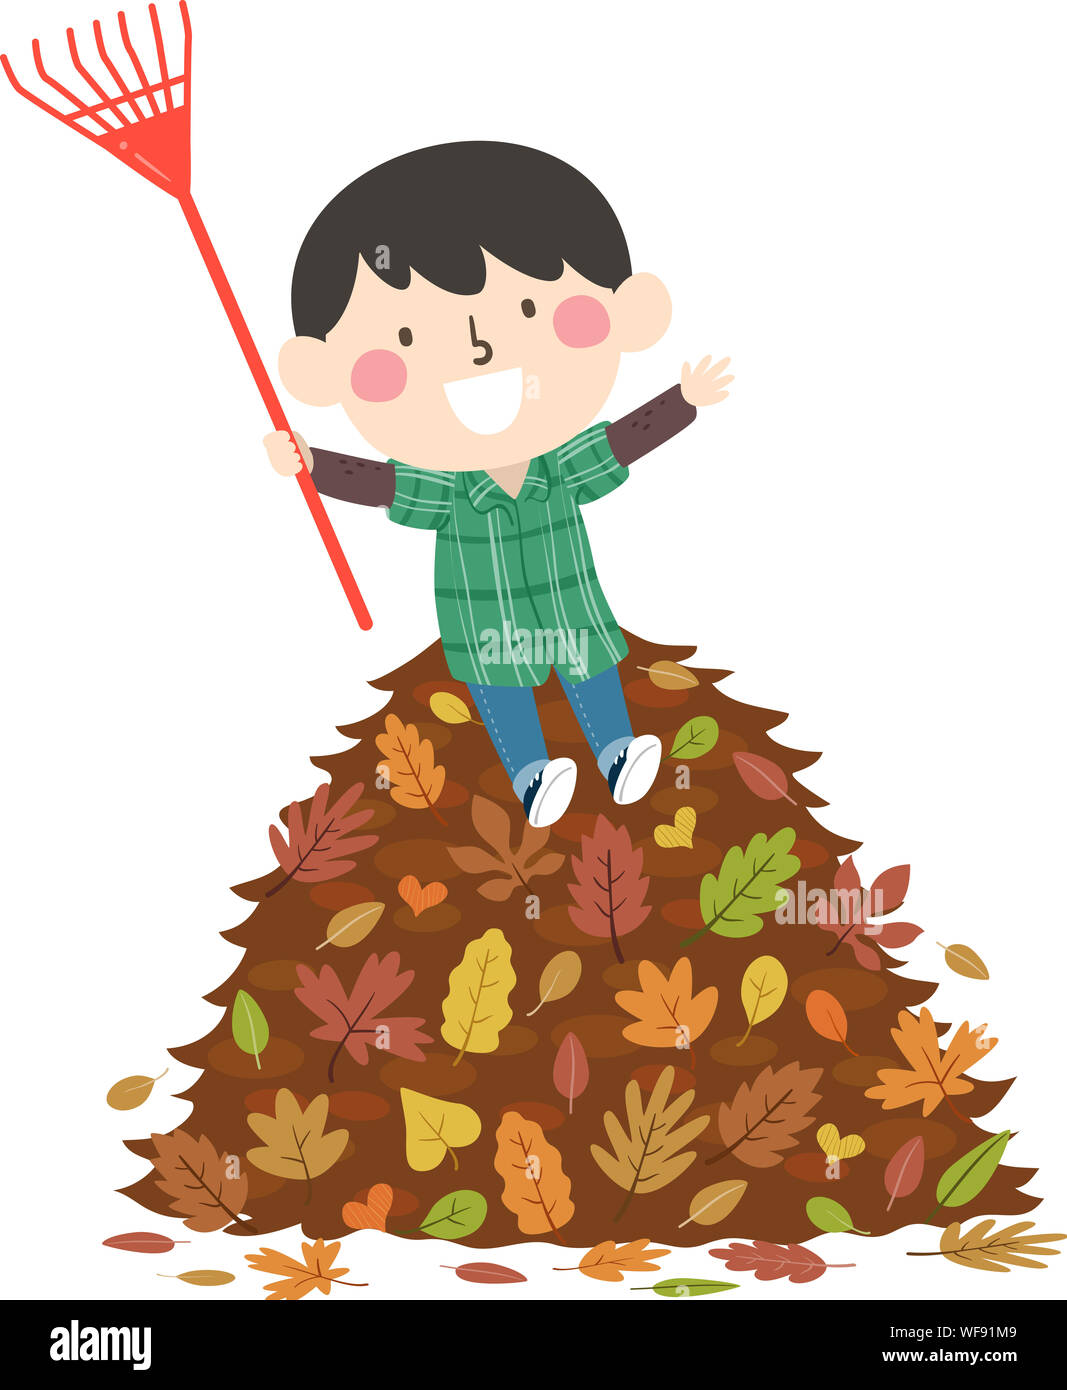 Illustration Of A Kid Boy Sitting On Top Of A Pile Of Autumn Leaves While Holding A Rake Stock Photo Alamy